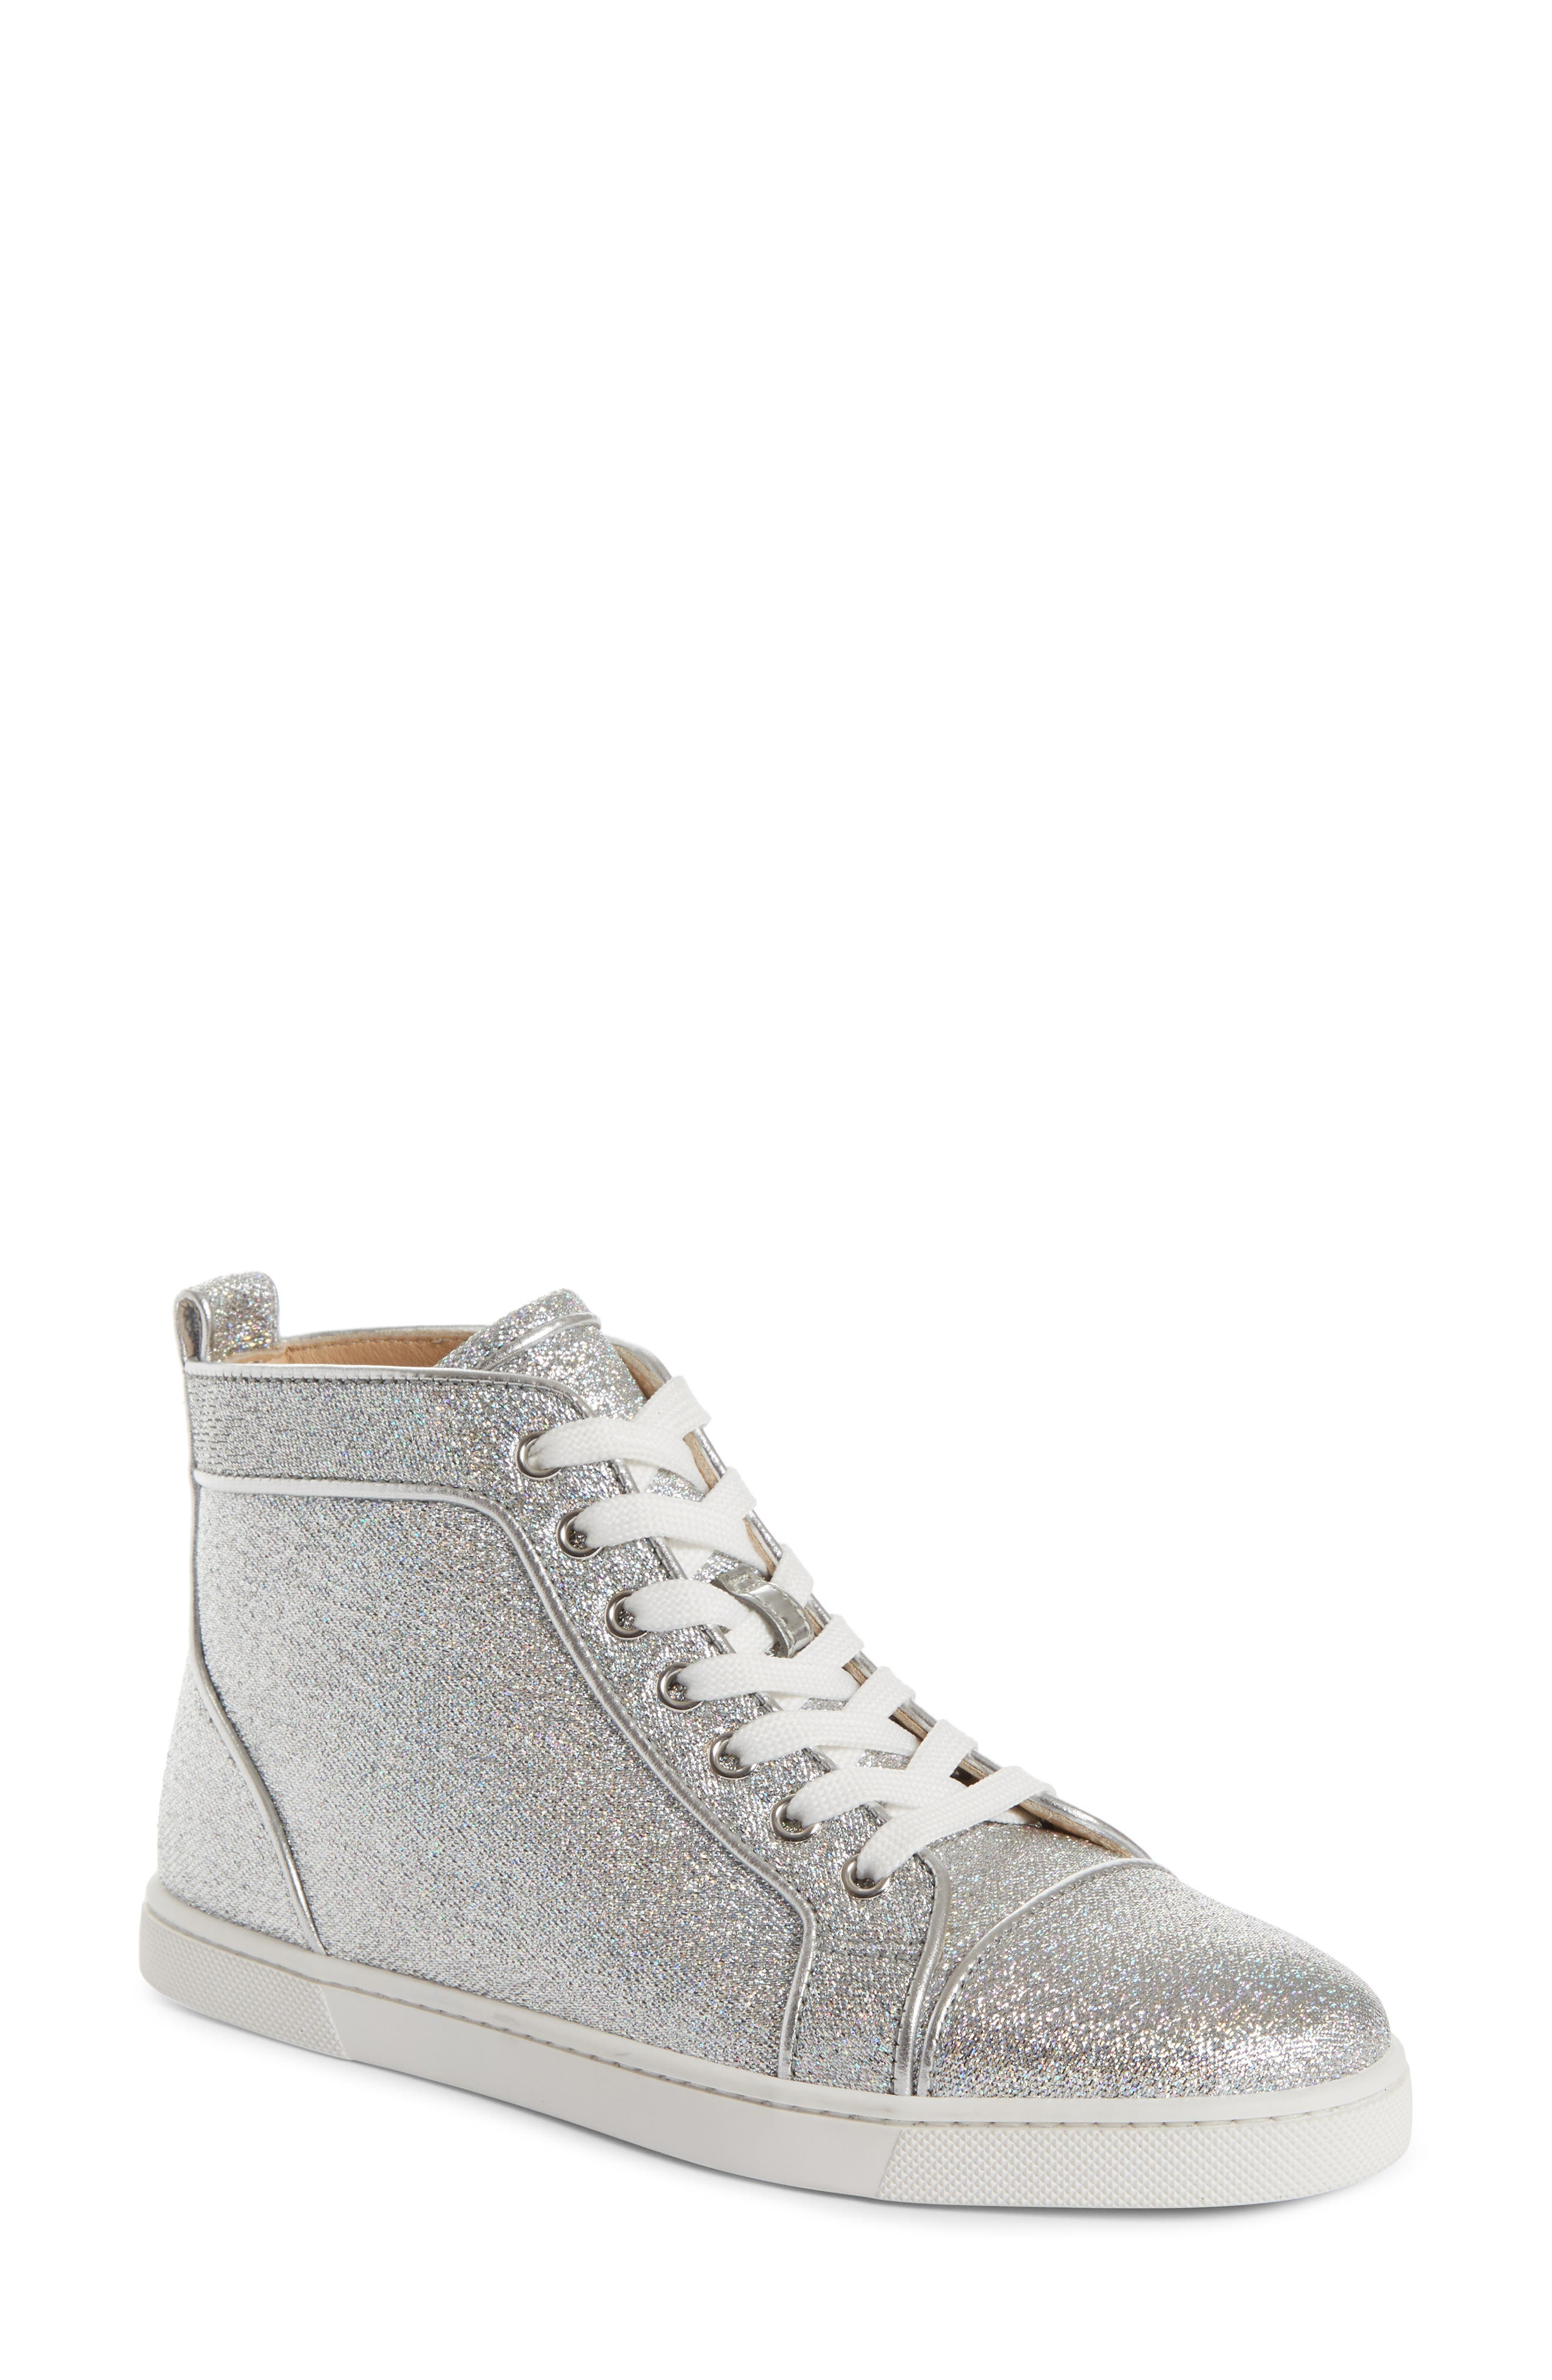 Orlato Metallic High Top Sneaker,                             Main thumbnail 1, color,                             Silver